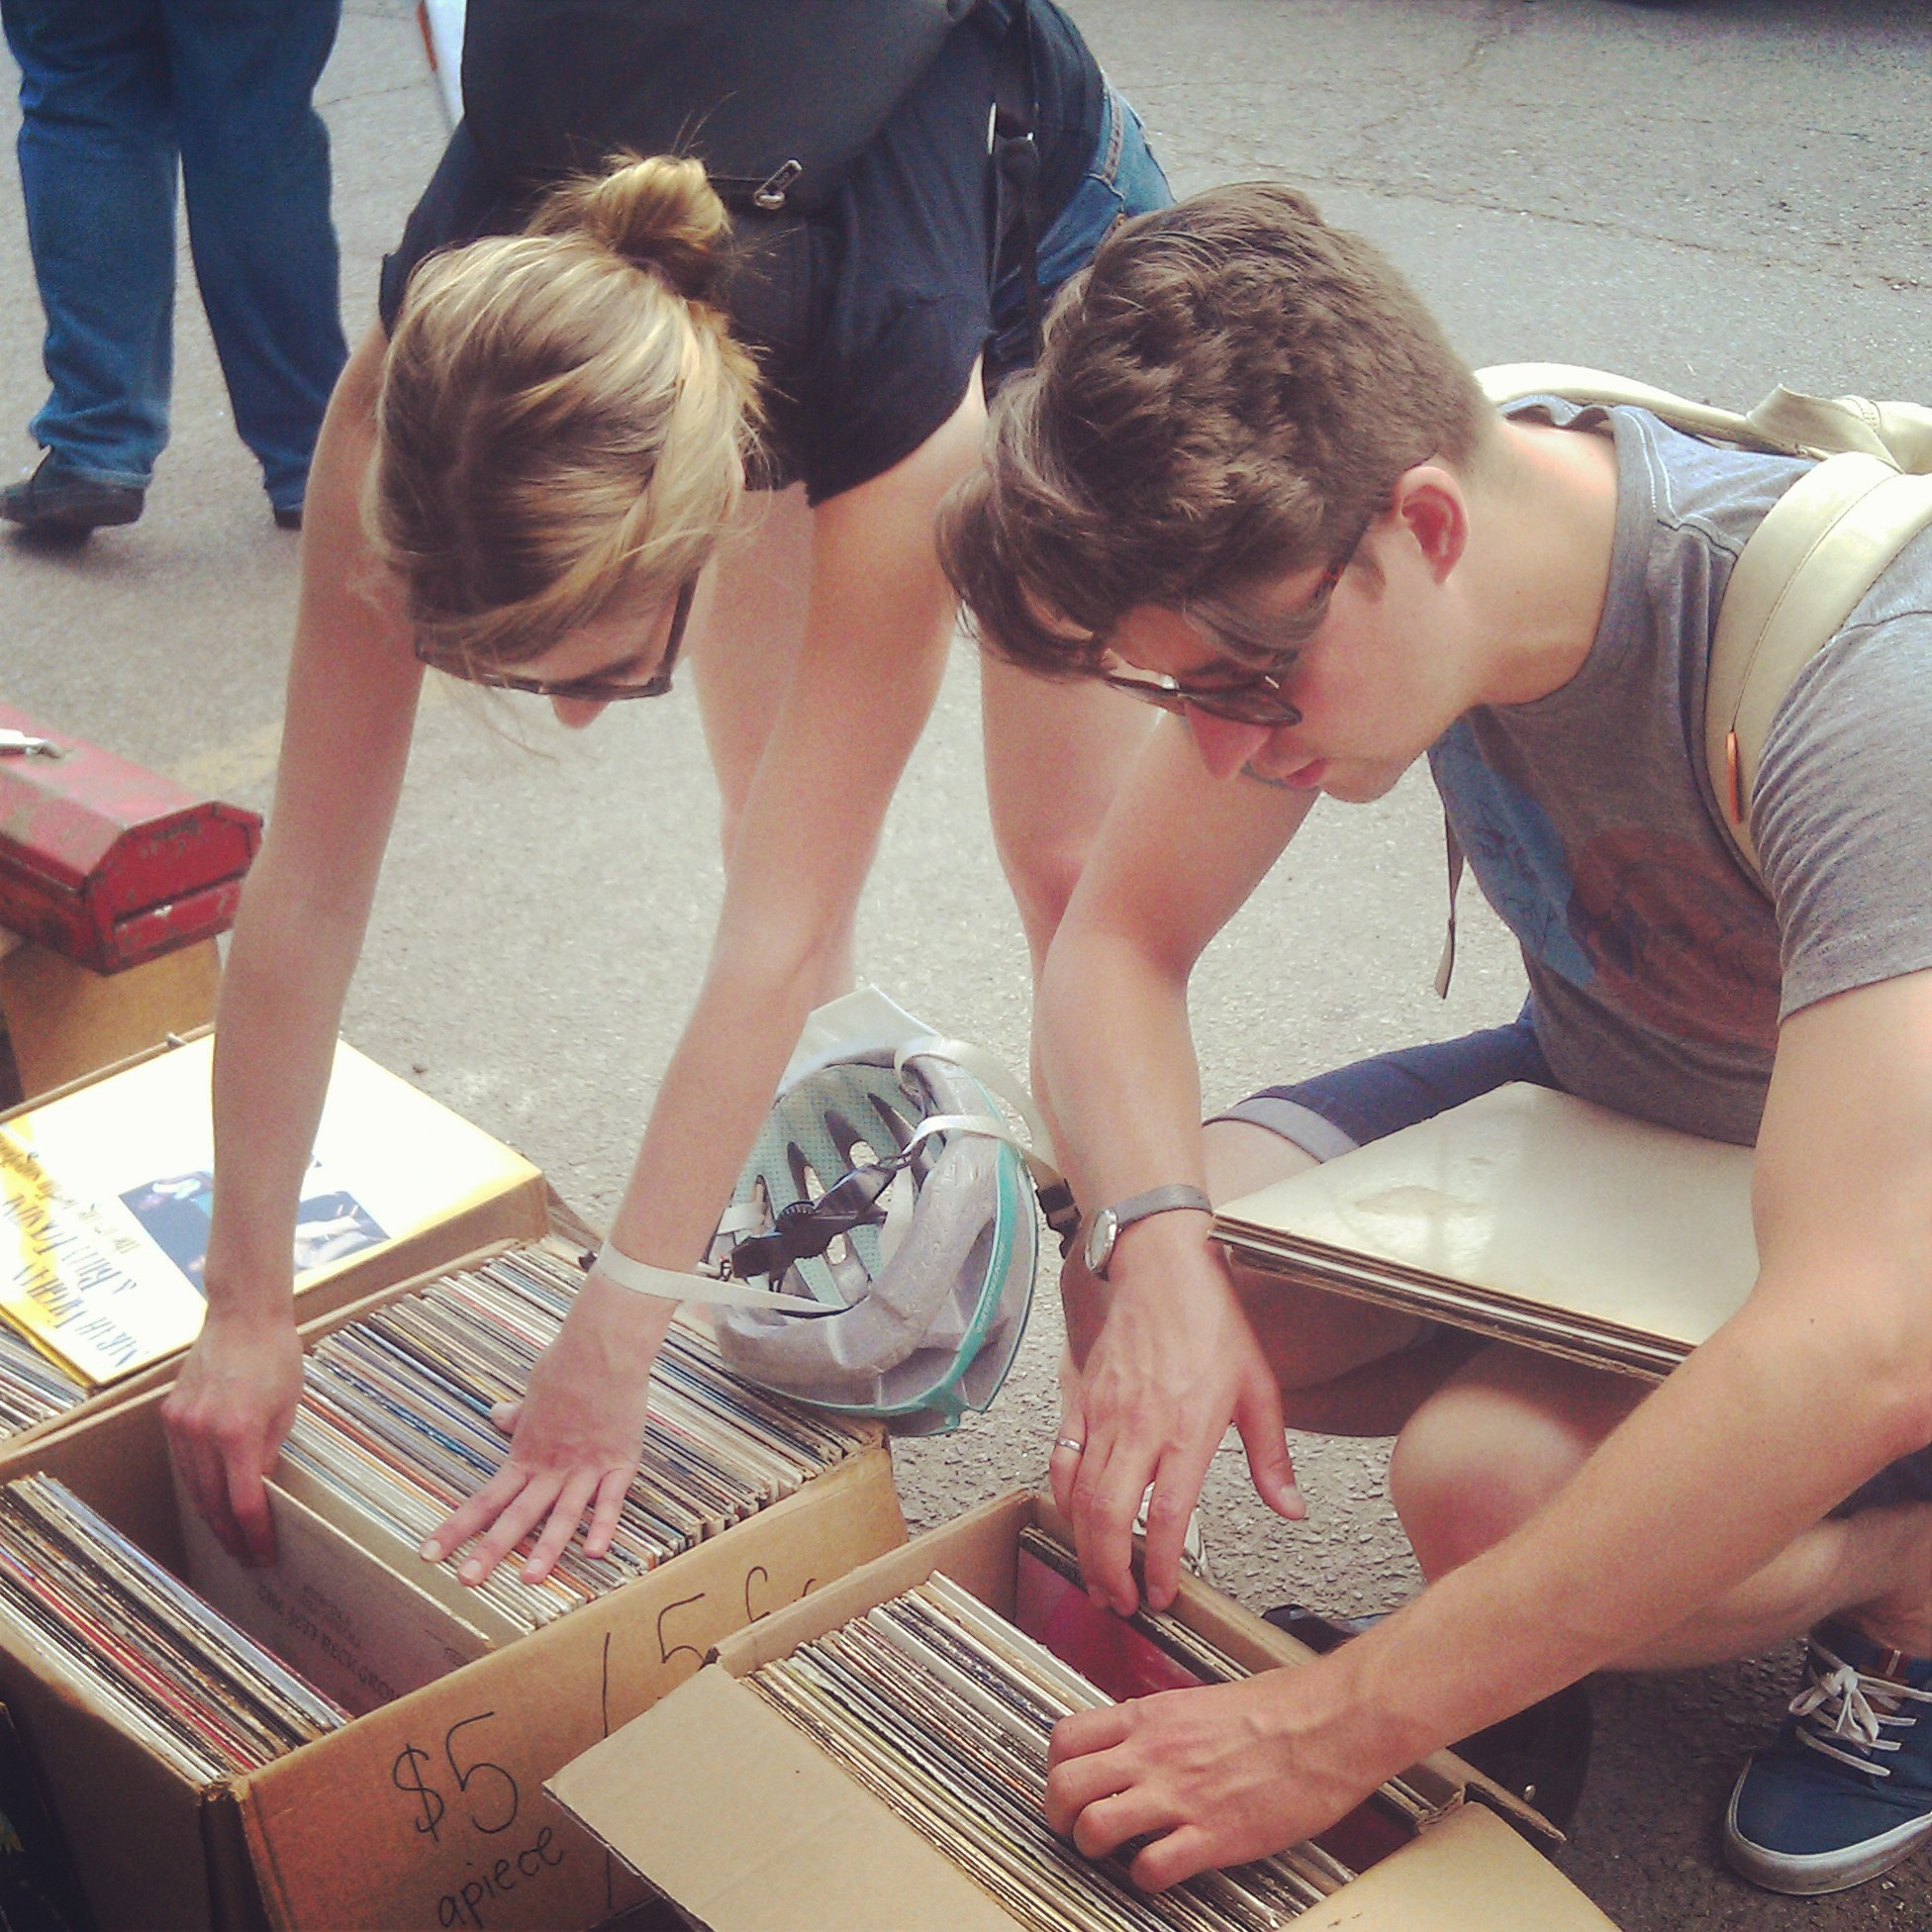 We love records!